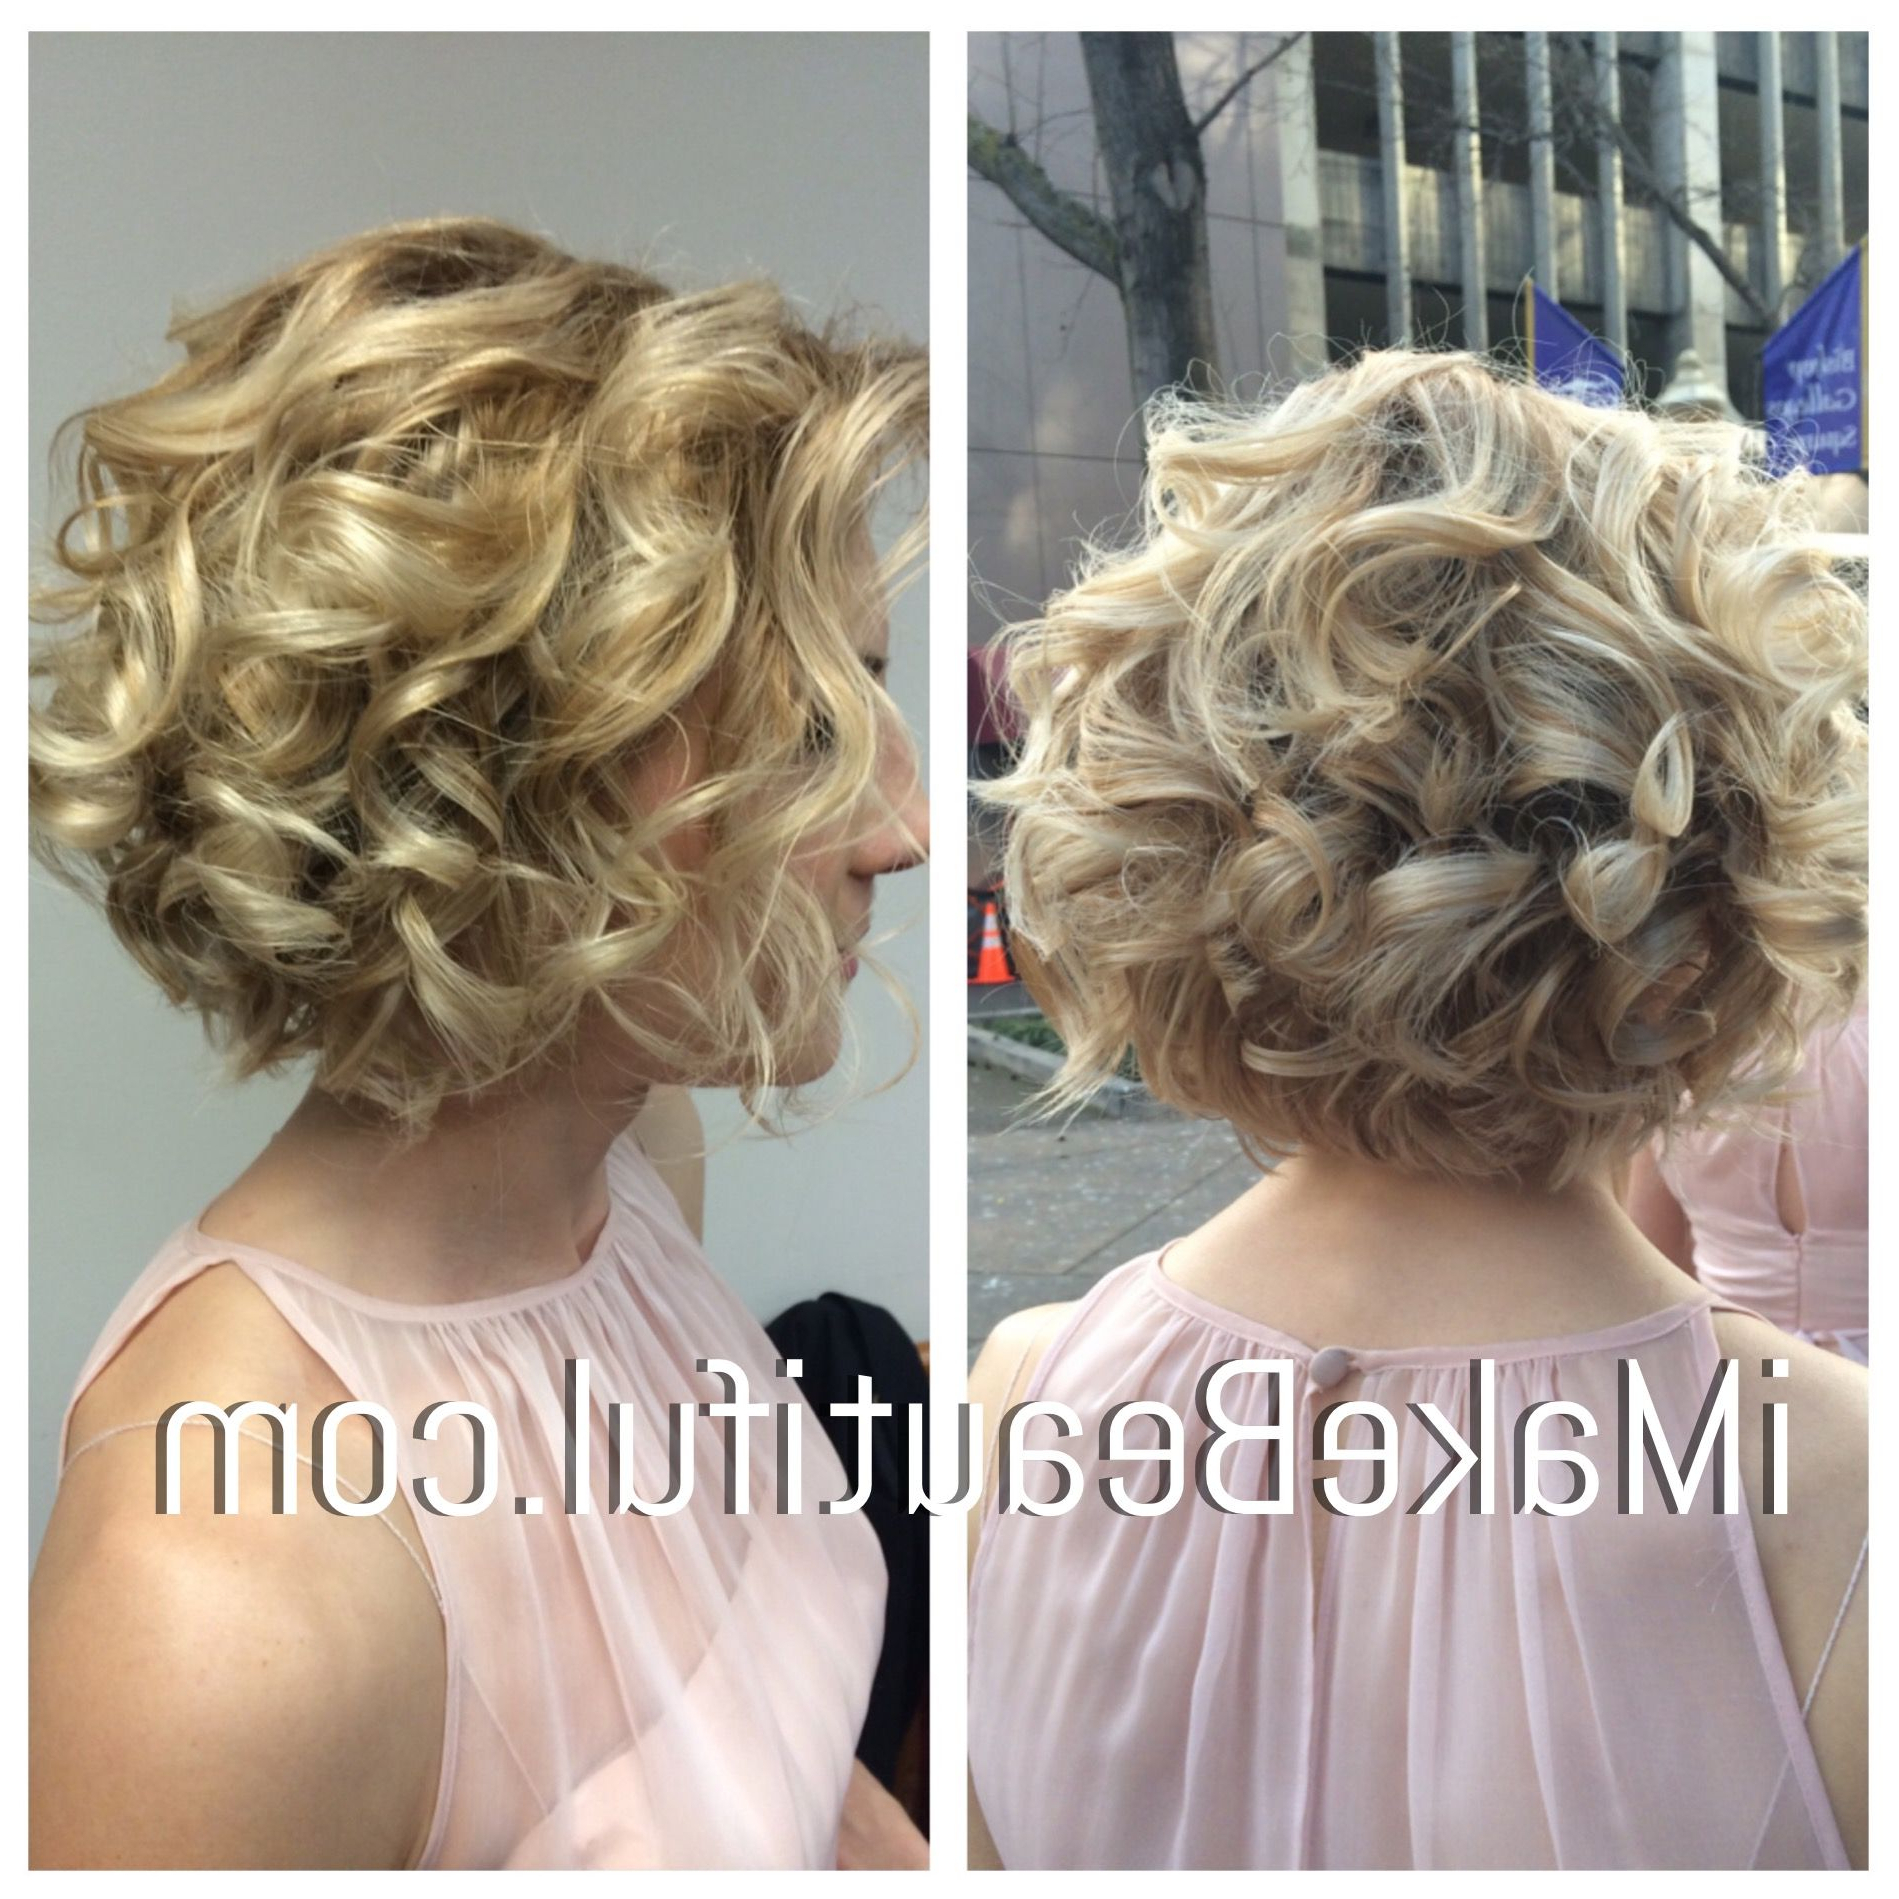 Current Braided Bob Short Hairdo Bridal Hairstyles In Bridal Hair For Short Hair (View 7 of 20)